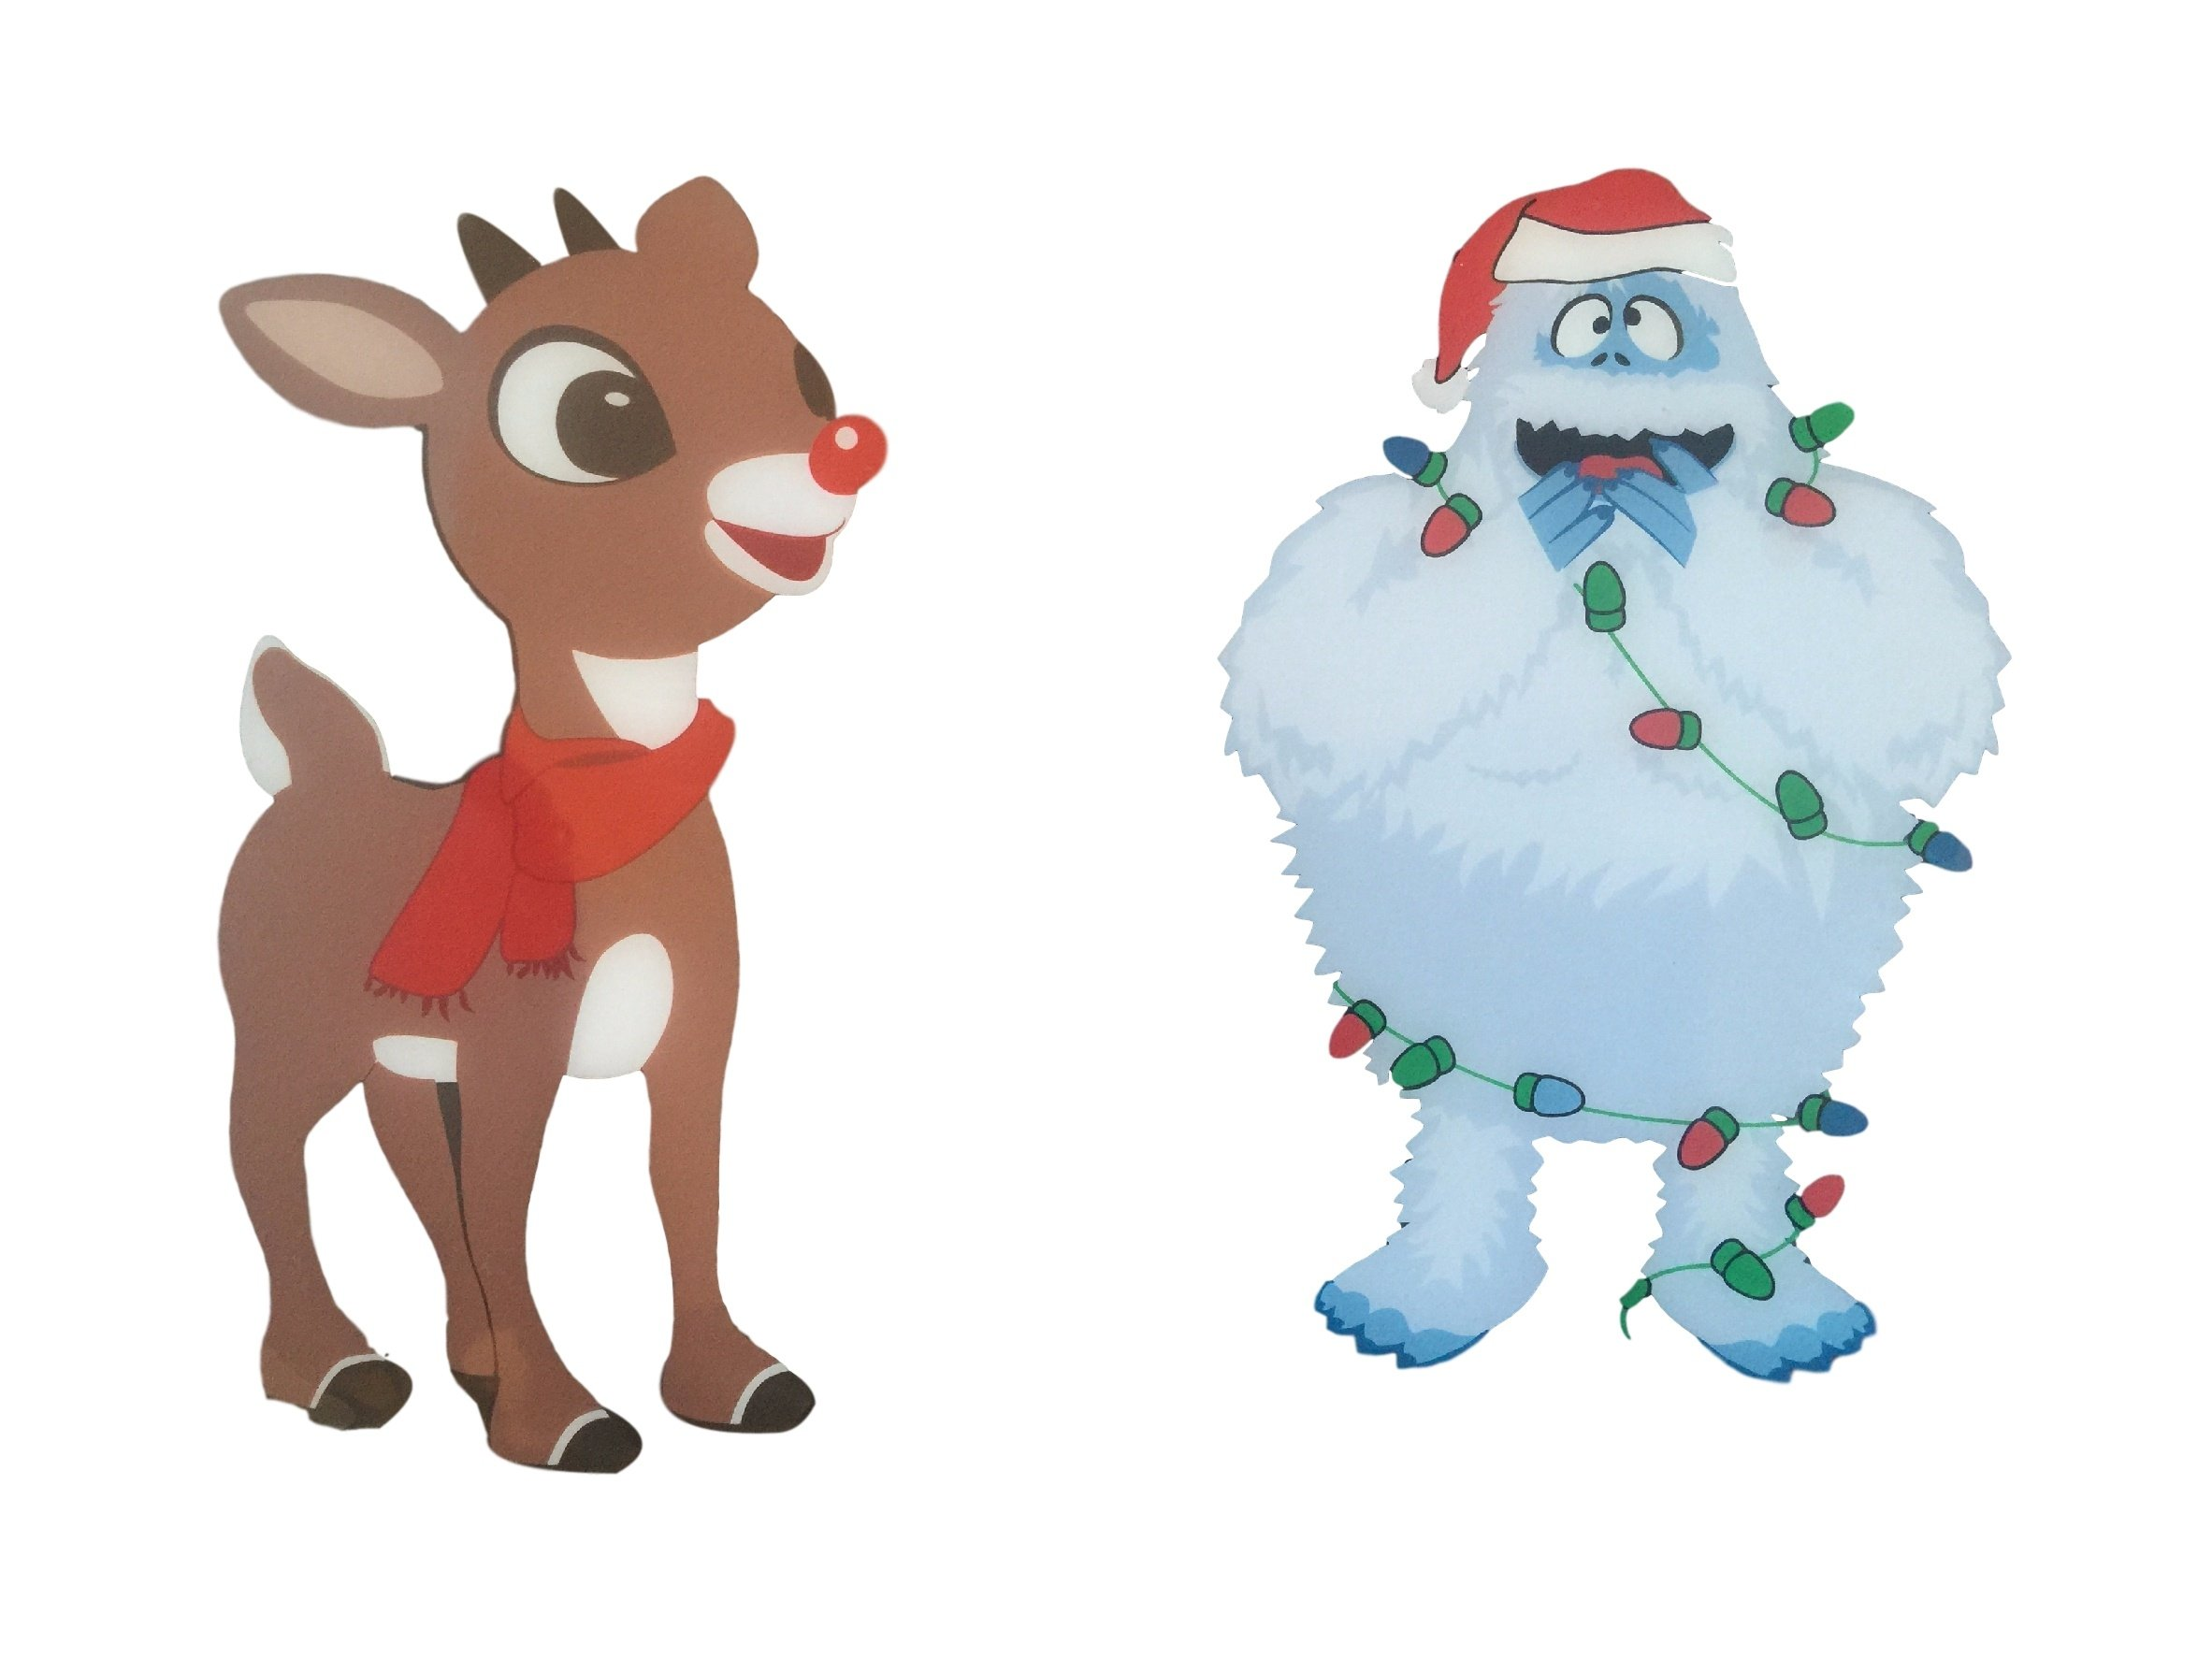 Abominable Snowman Clipart at GetDrawings.com.